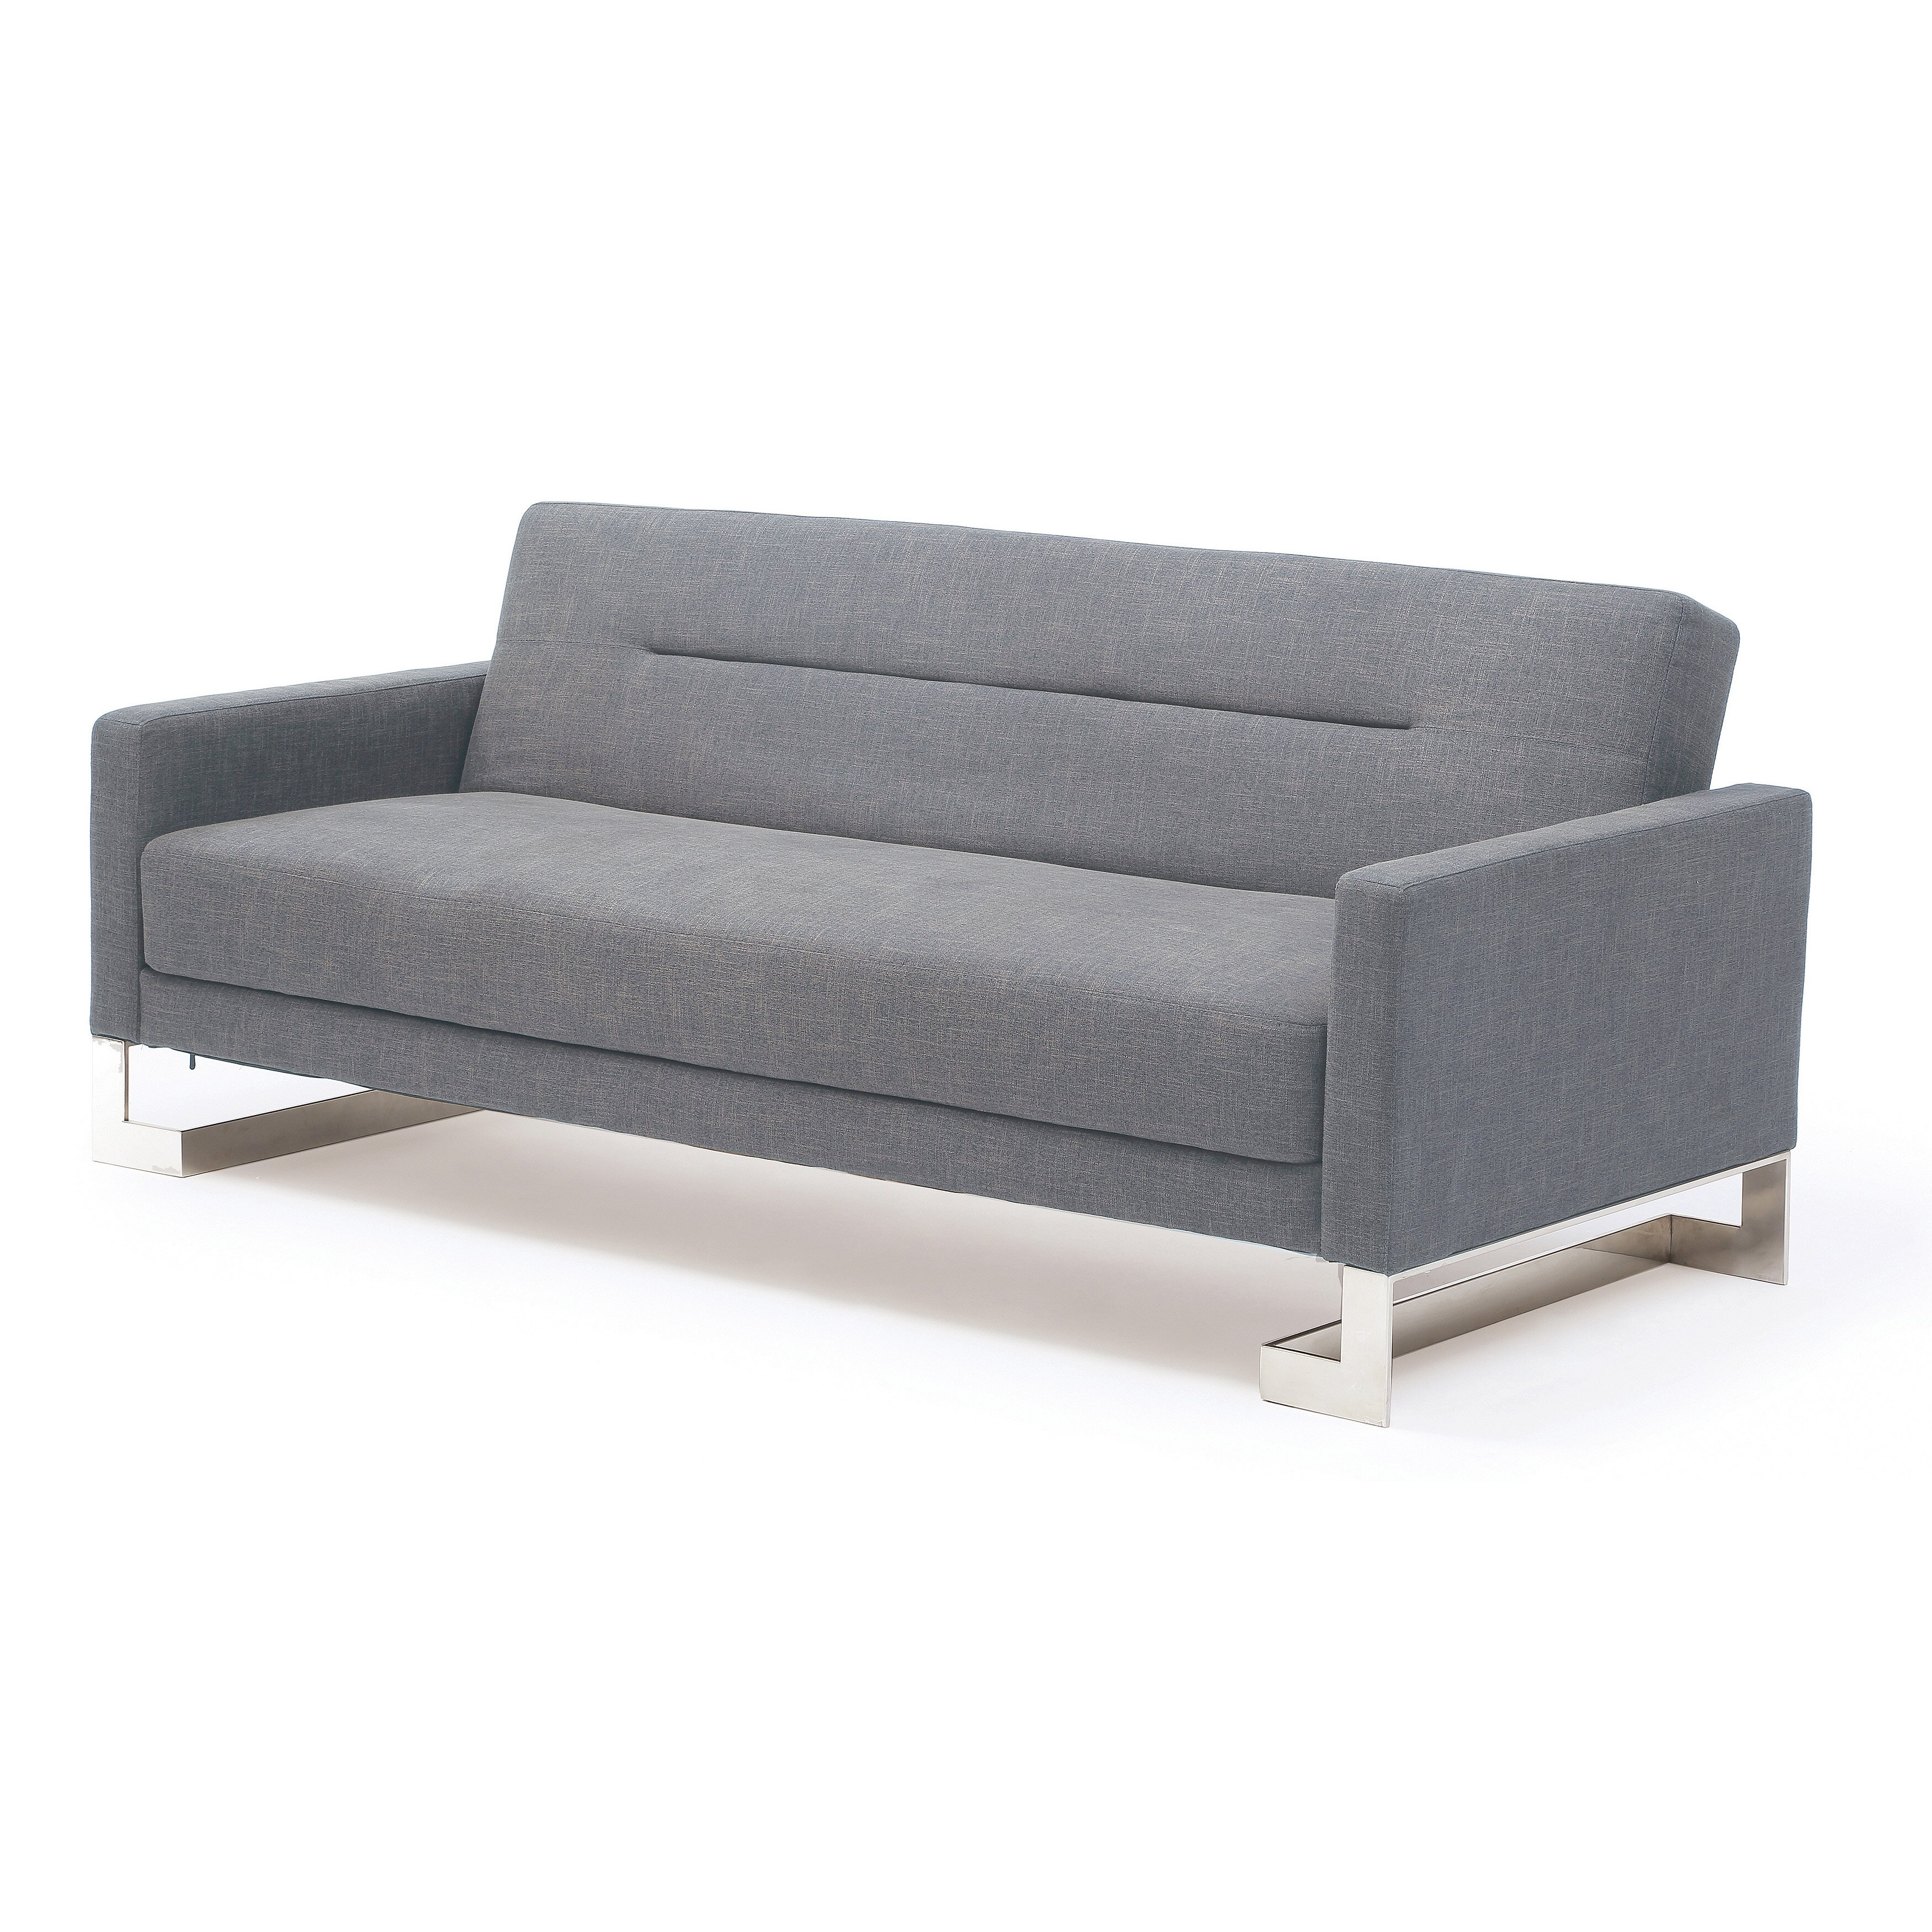 At home usa modern sleeper sofa reviews wayfair for Sectional sleeper sofa